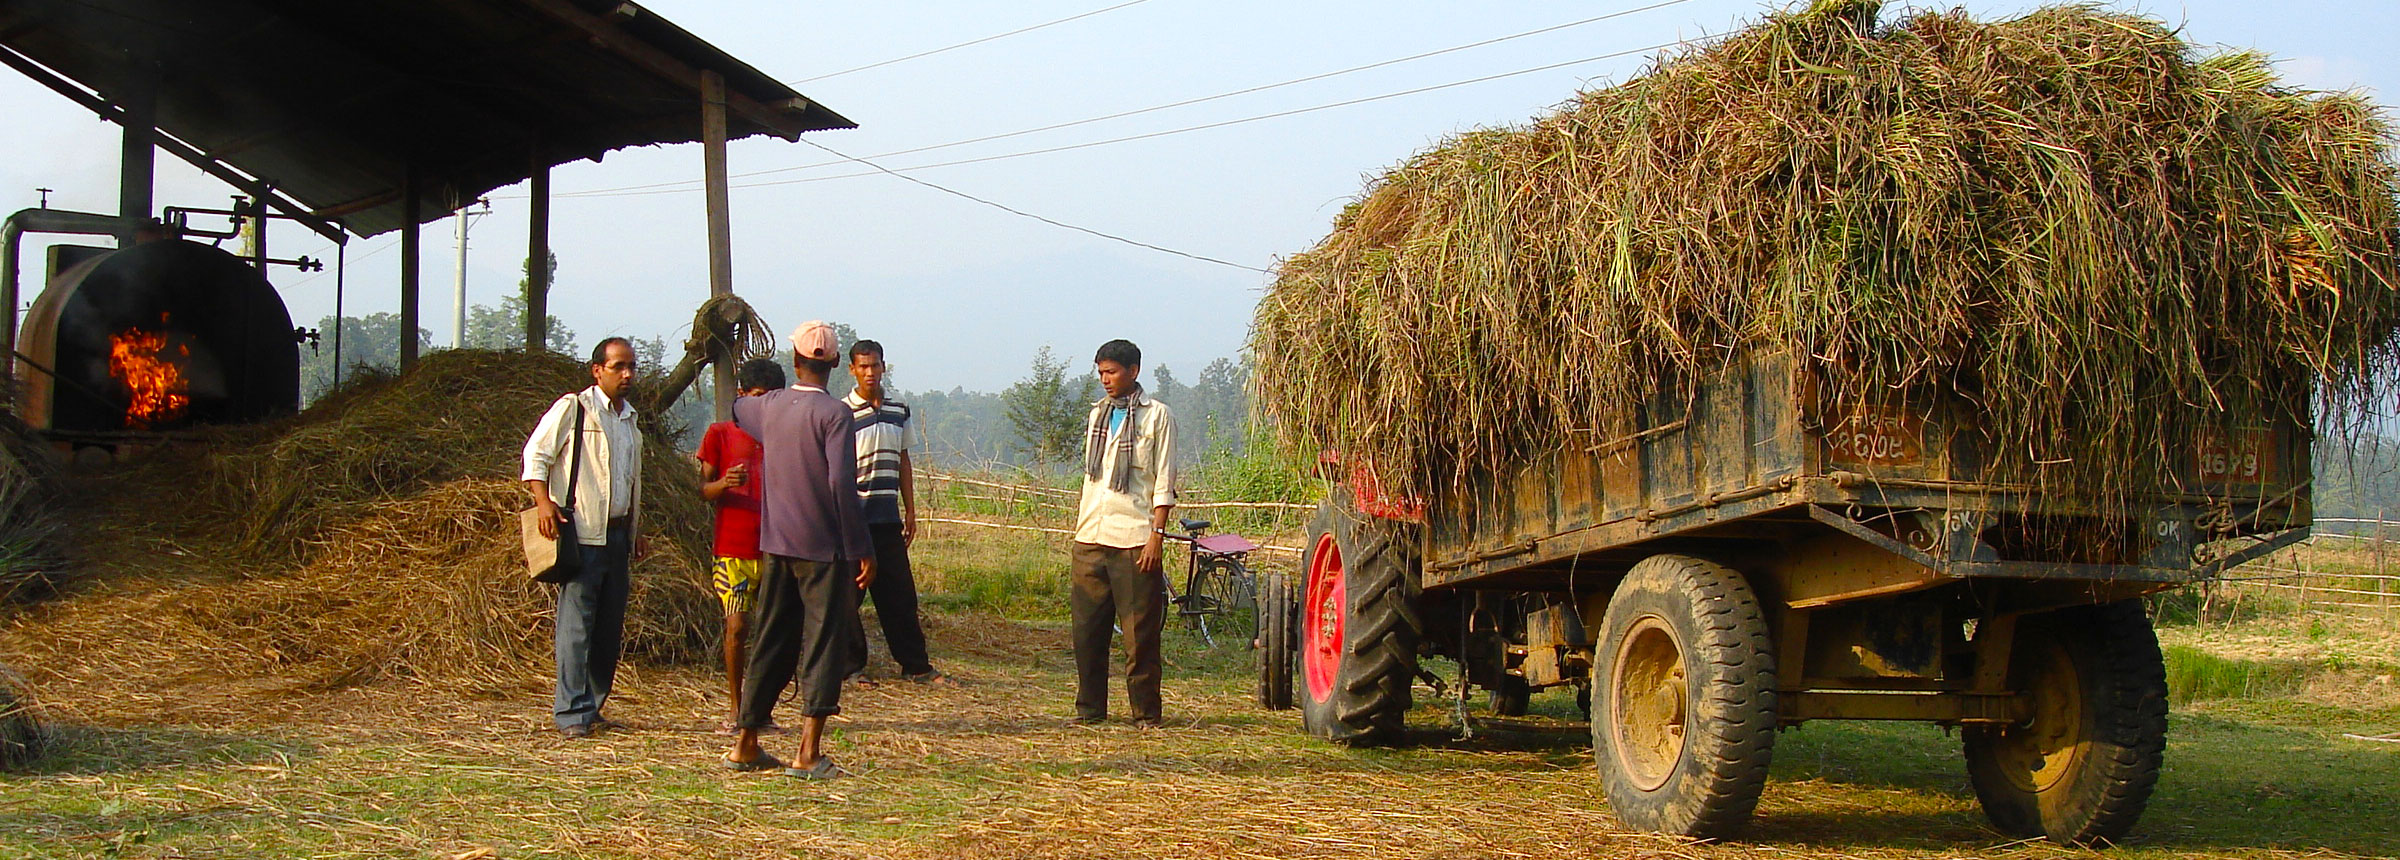 Nepali farmers offloading hay from truck